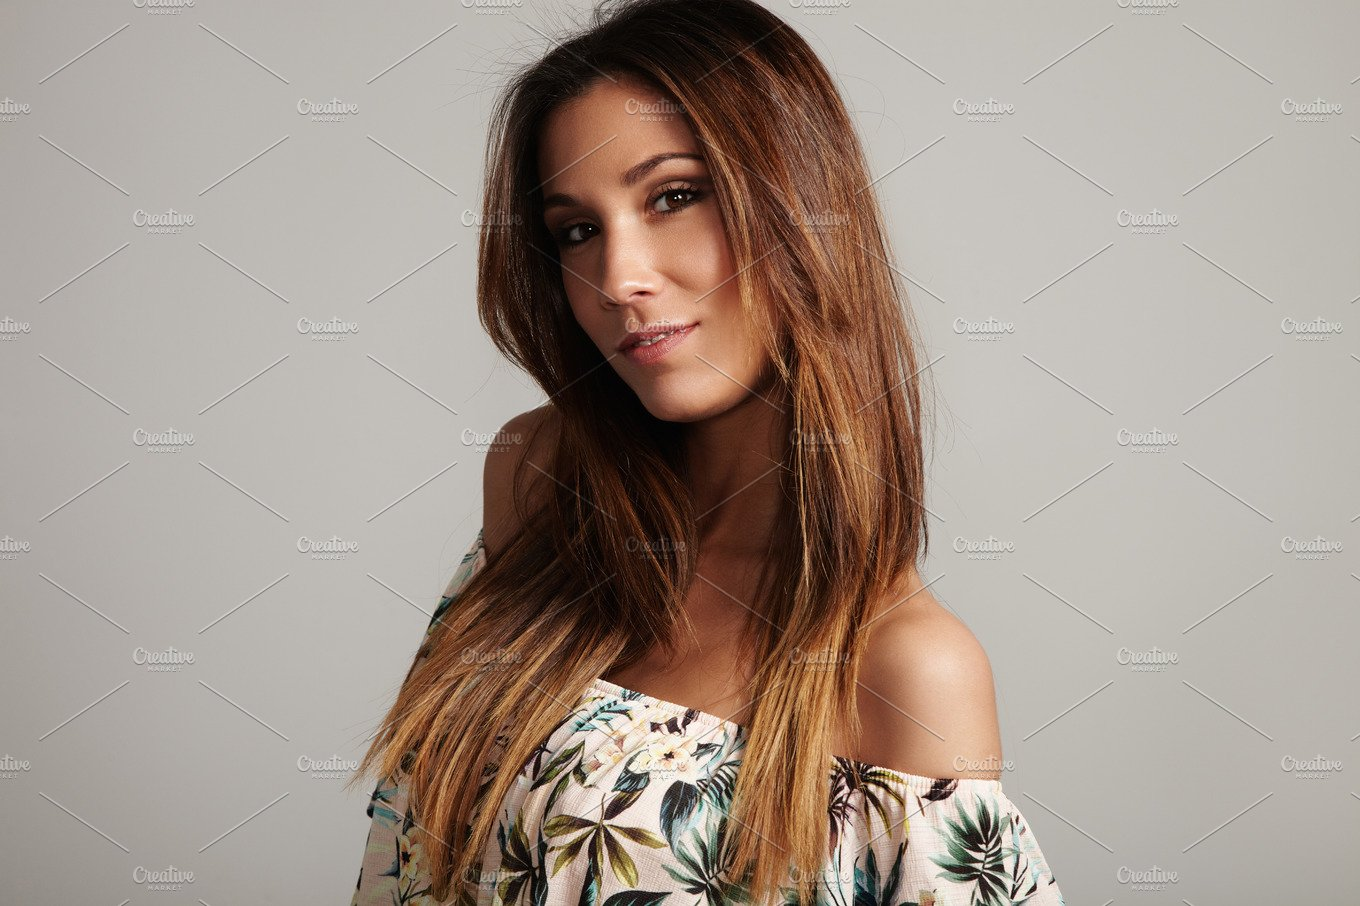 spanish woman with straight hair ~ People Photos